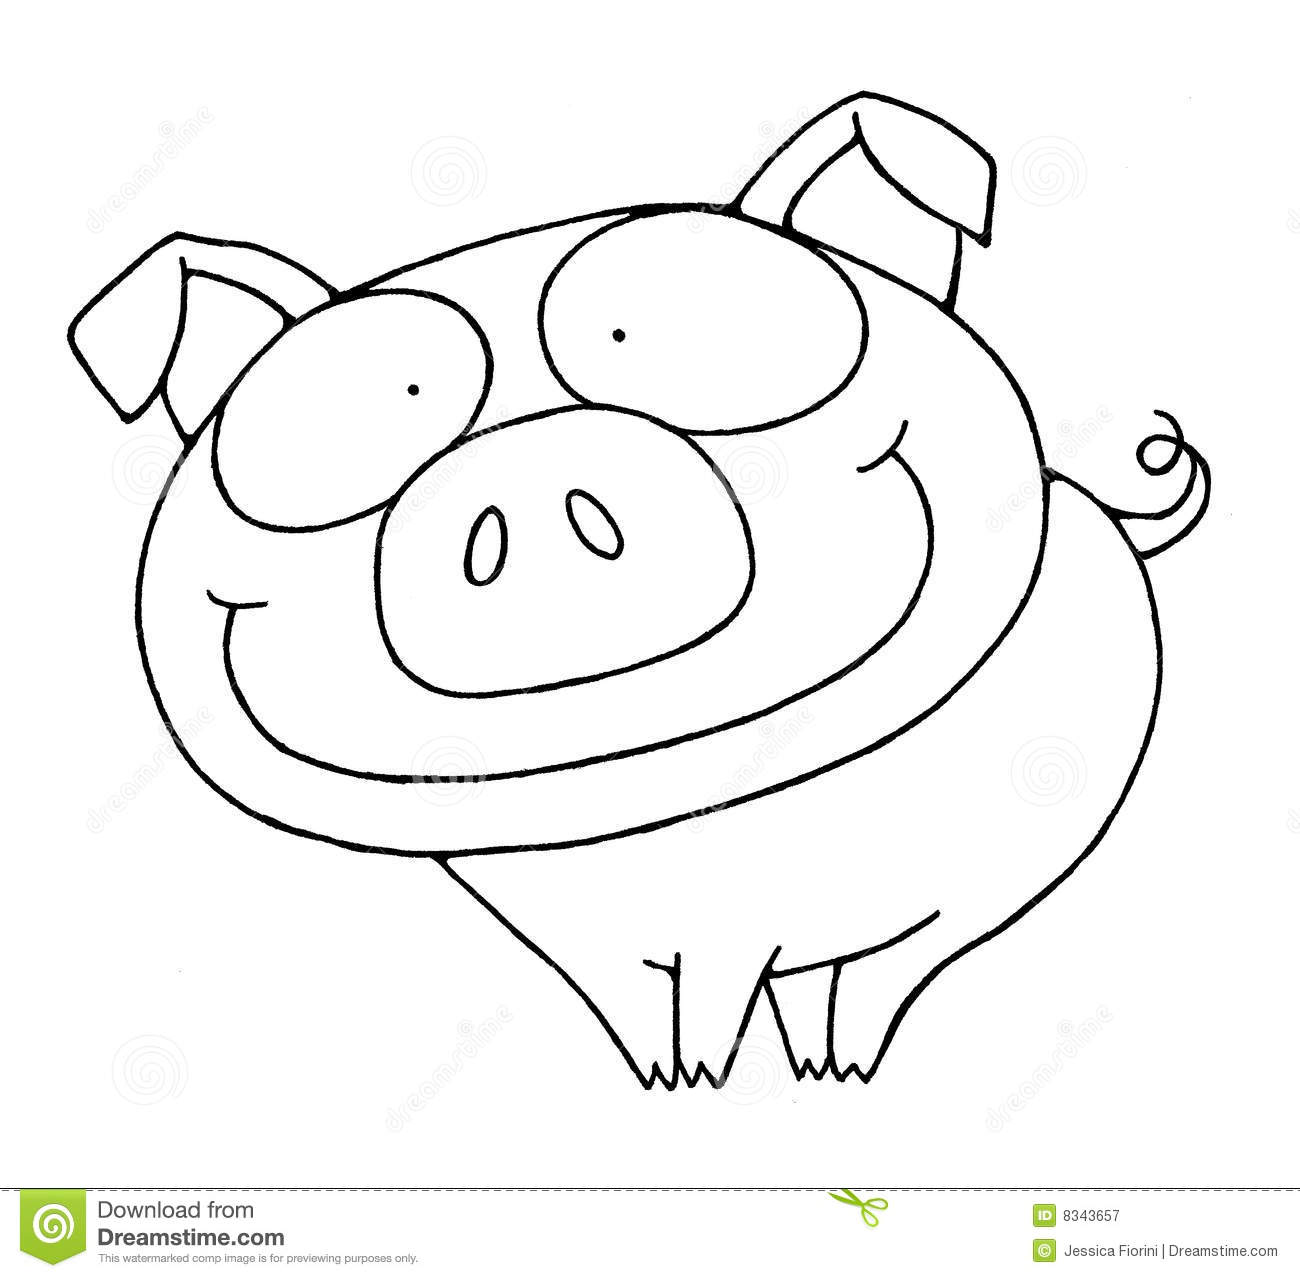 how to draw a pig standing up pig crafts for kids ideas for arts and crafts projects standing how a pig up draw to